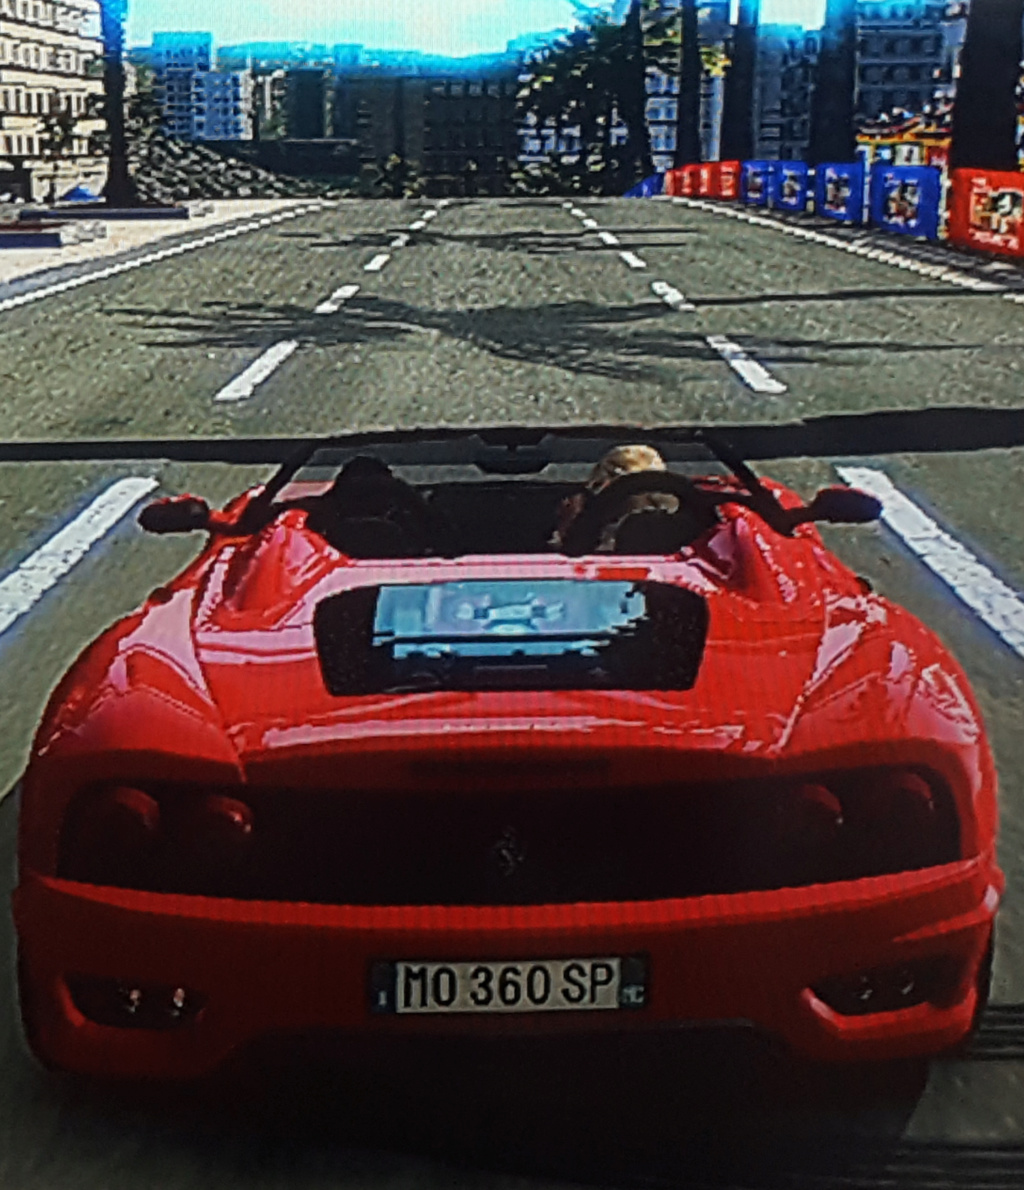 Out Run 2006 Coast to Coast sur Xbox live pour Xbox One ? - Page 2 20201112